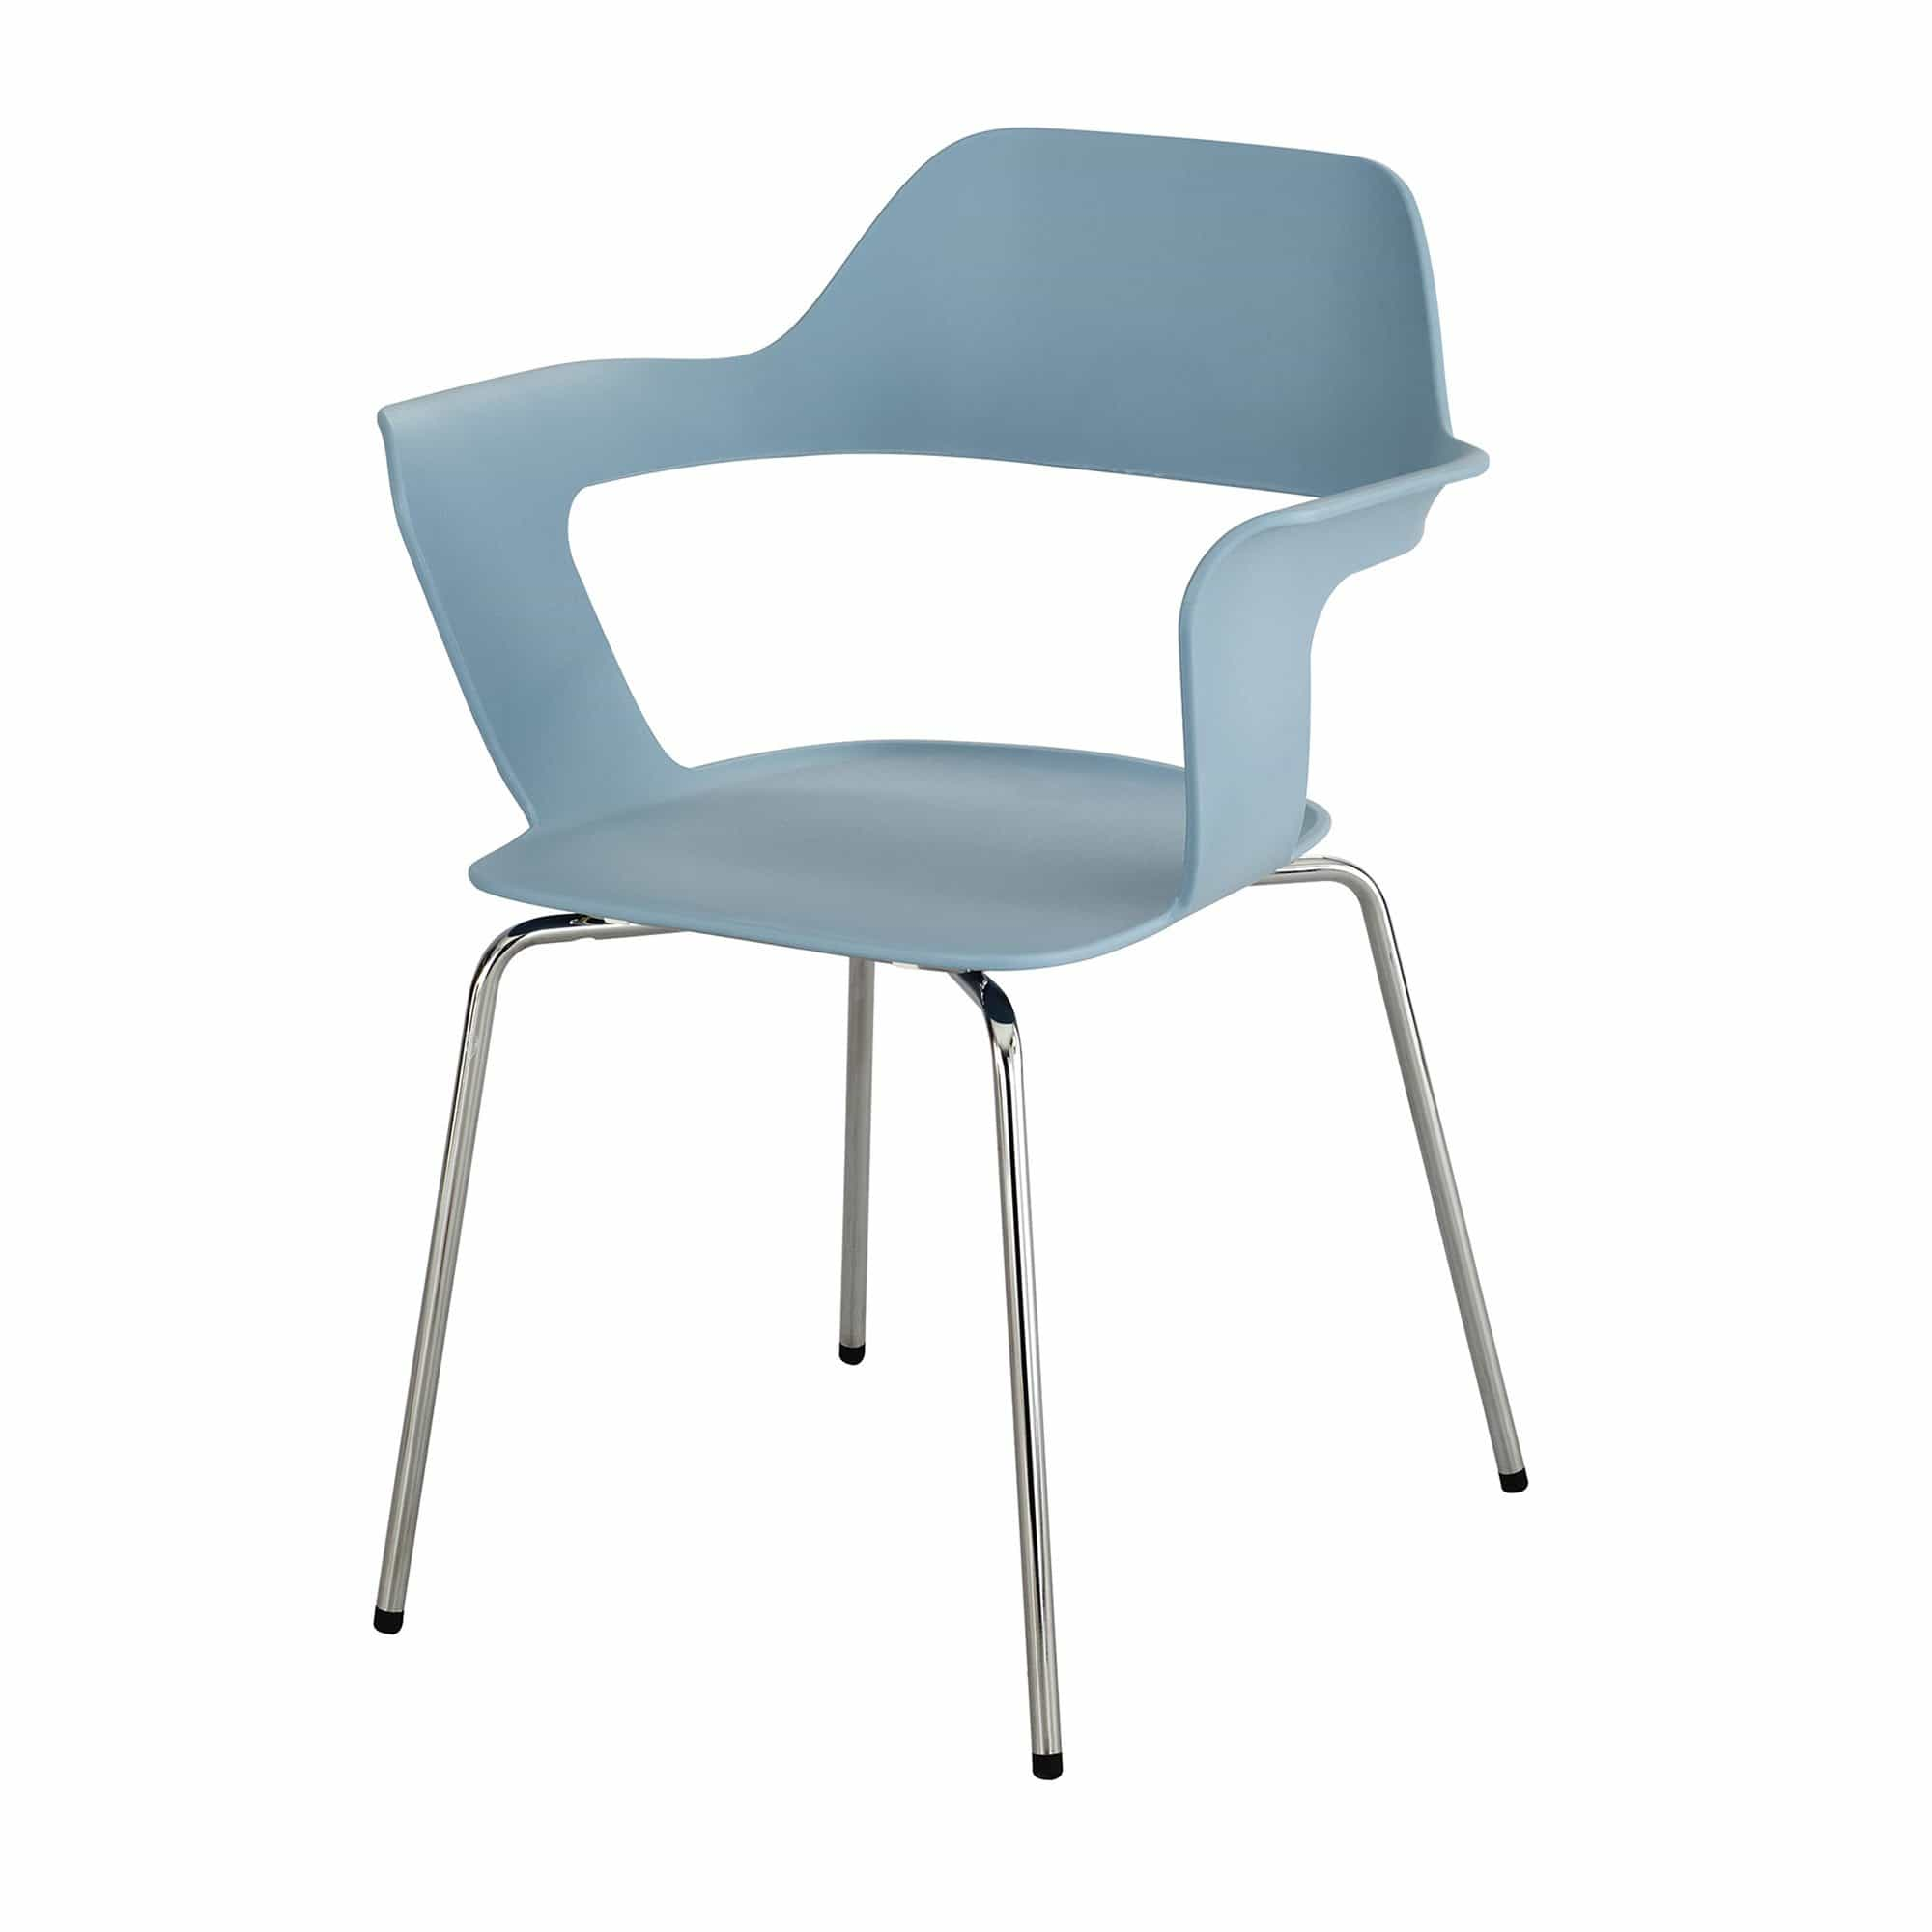 bedinhome - 4275BU Bandi™ Conference Room Uniquely Shaped Open Seat Back Shell Traditional Blue Stack Chair With Flared Arms (Qty. 2) - Safco - Shell Stack Chair